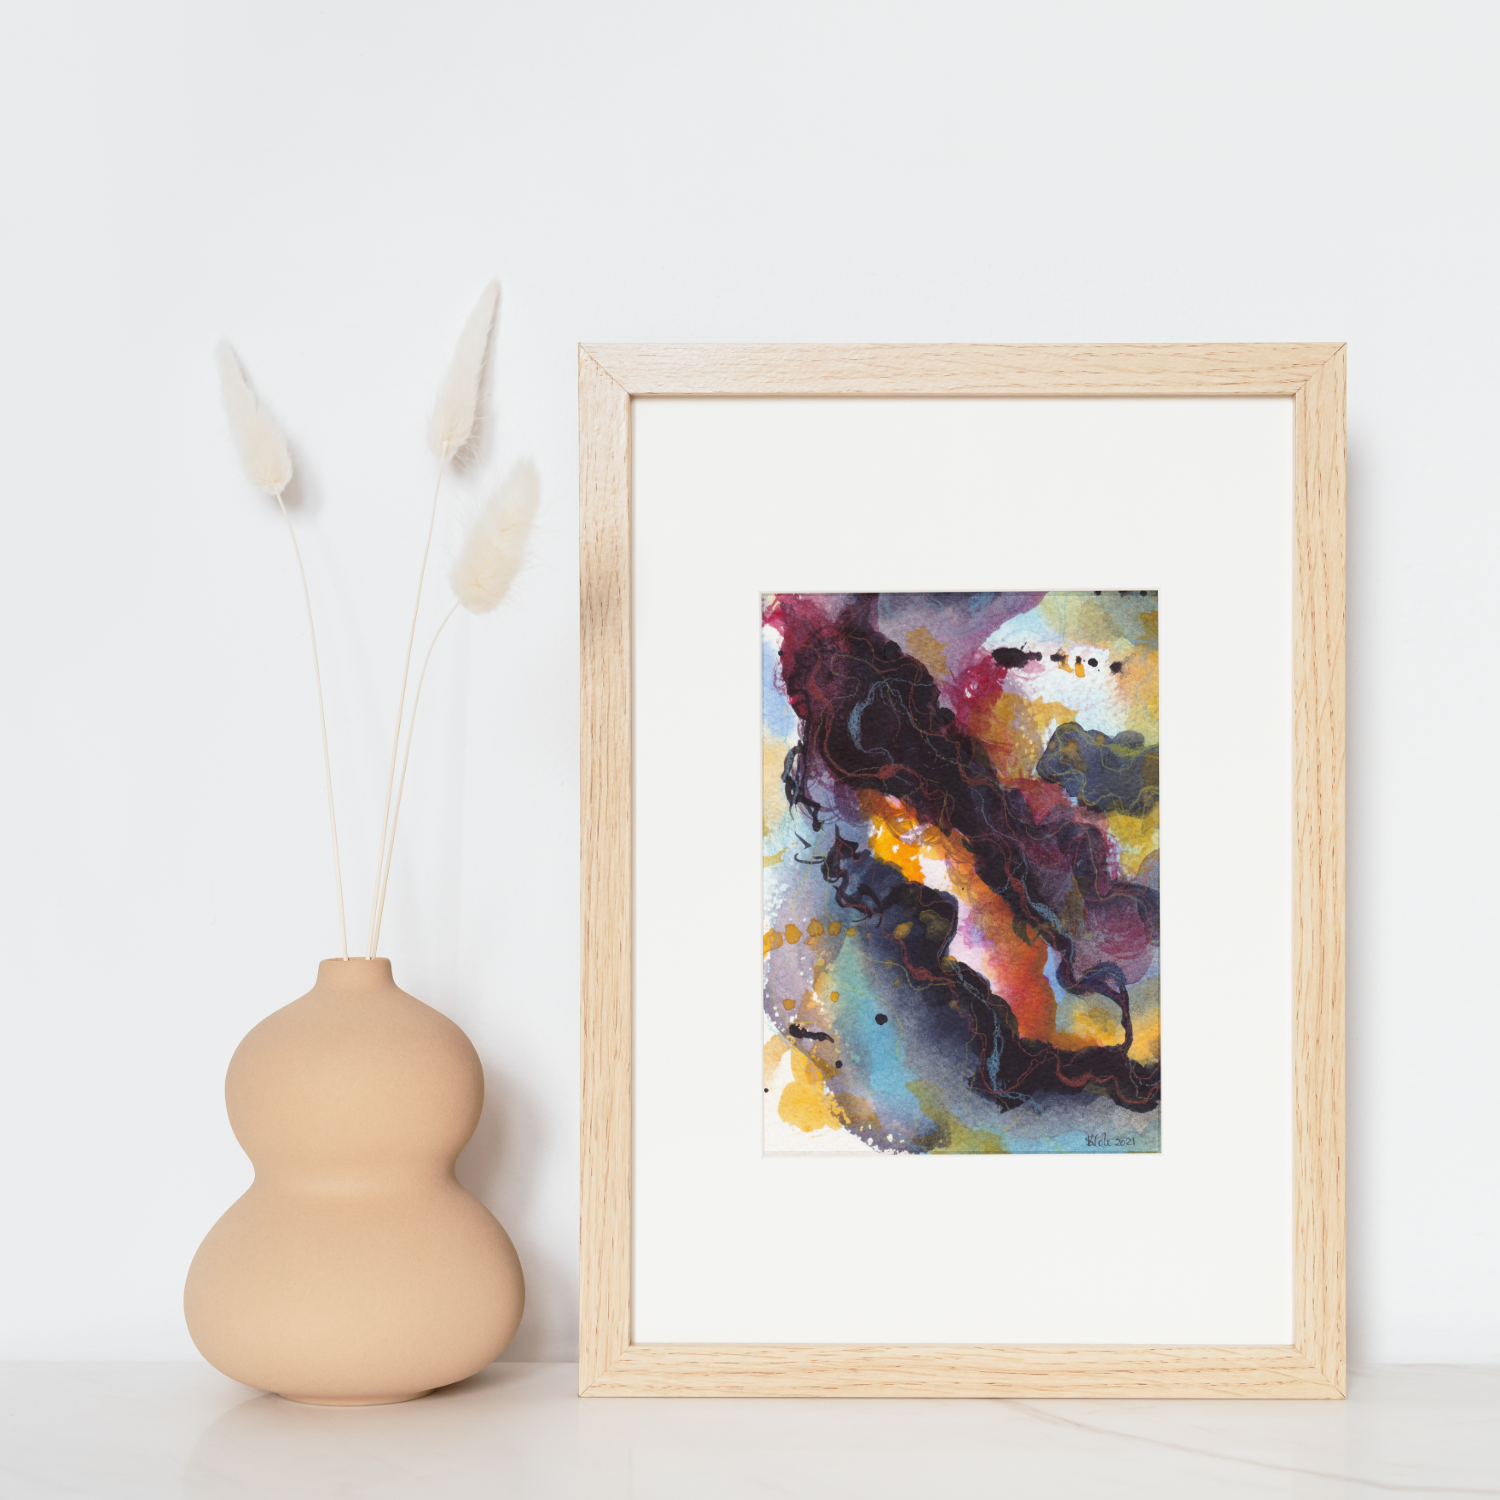 'Slipstream I' Original Watercolour Abstract by Stacey-Ann Cole